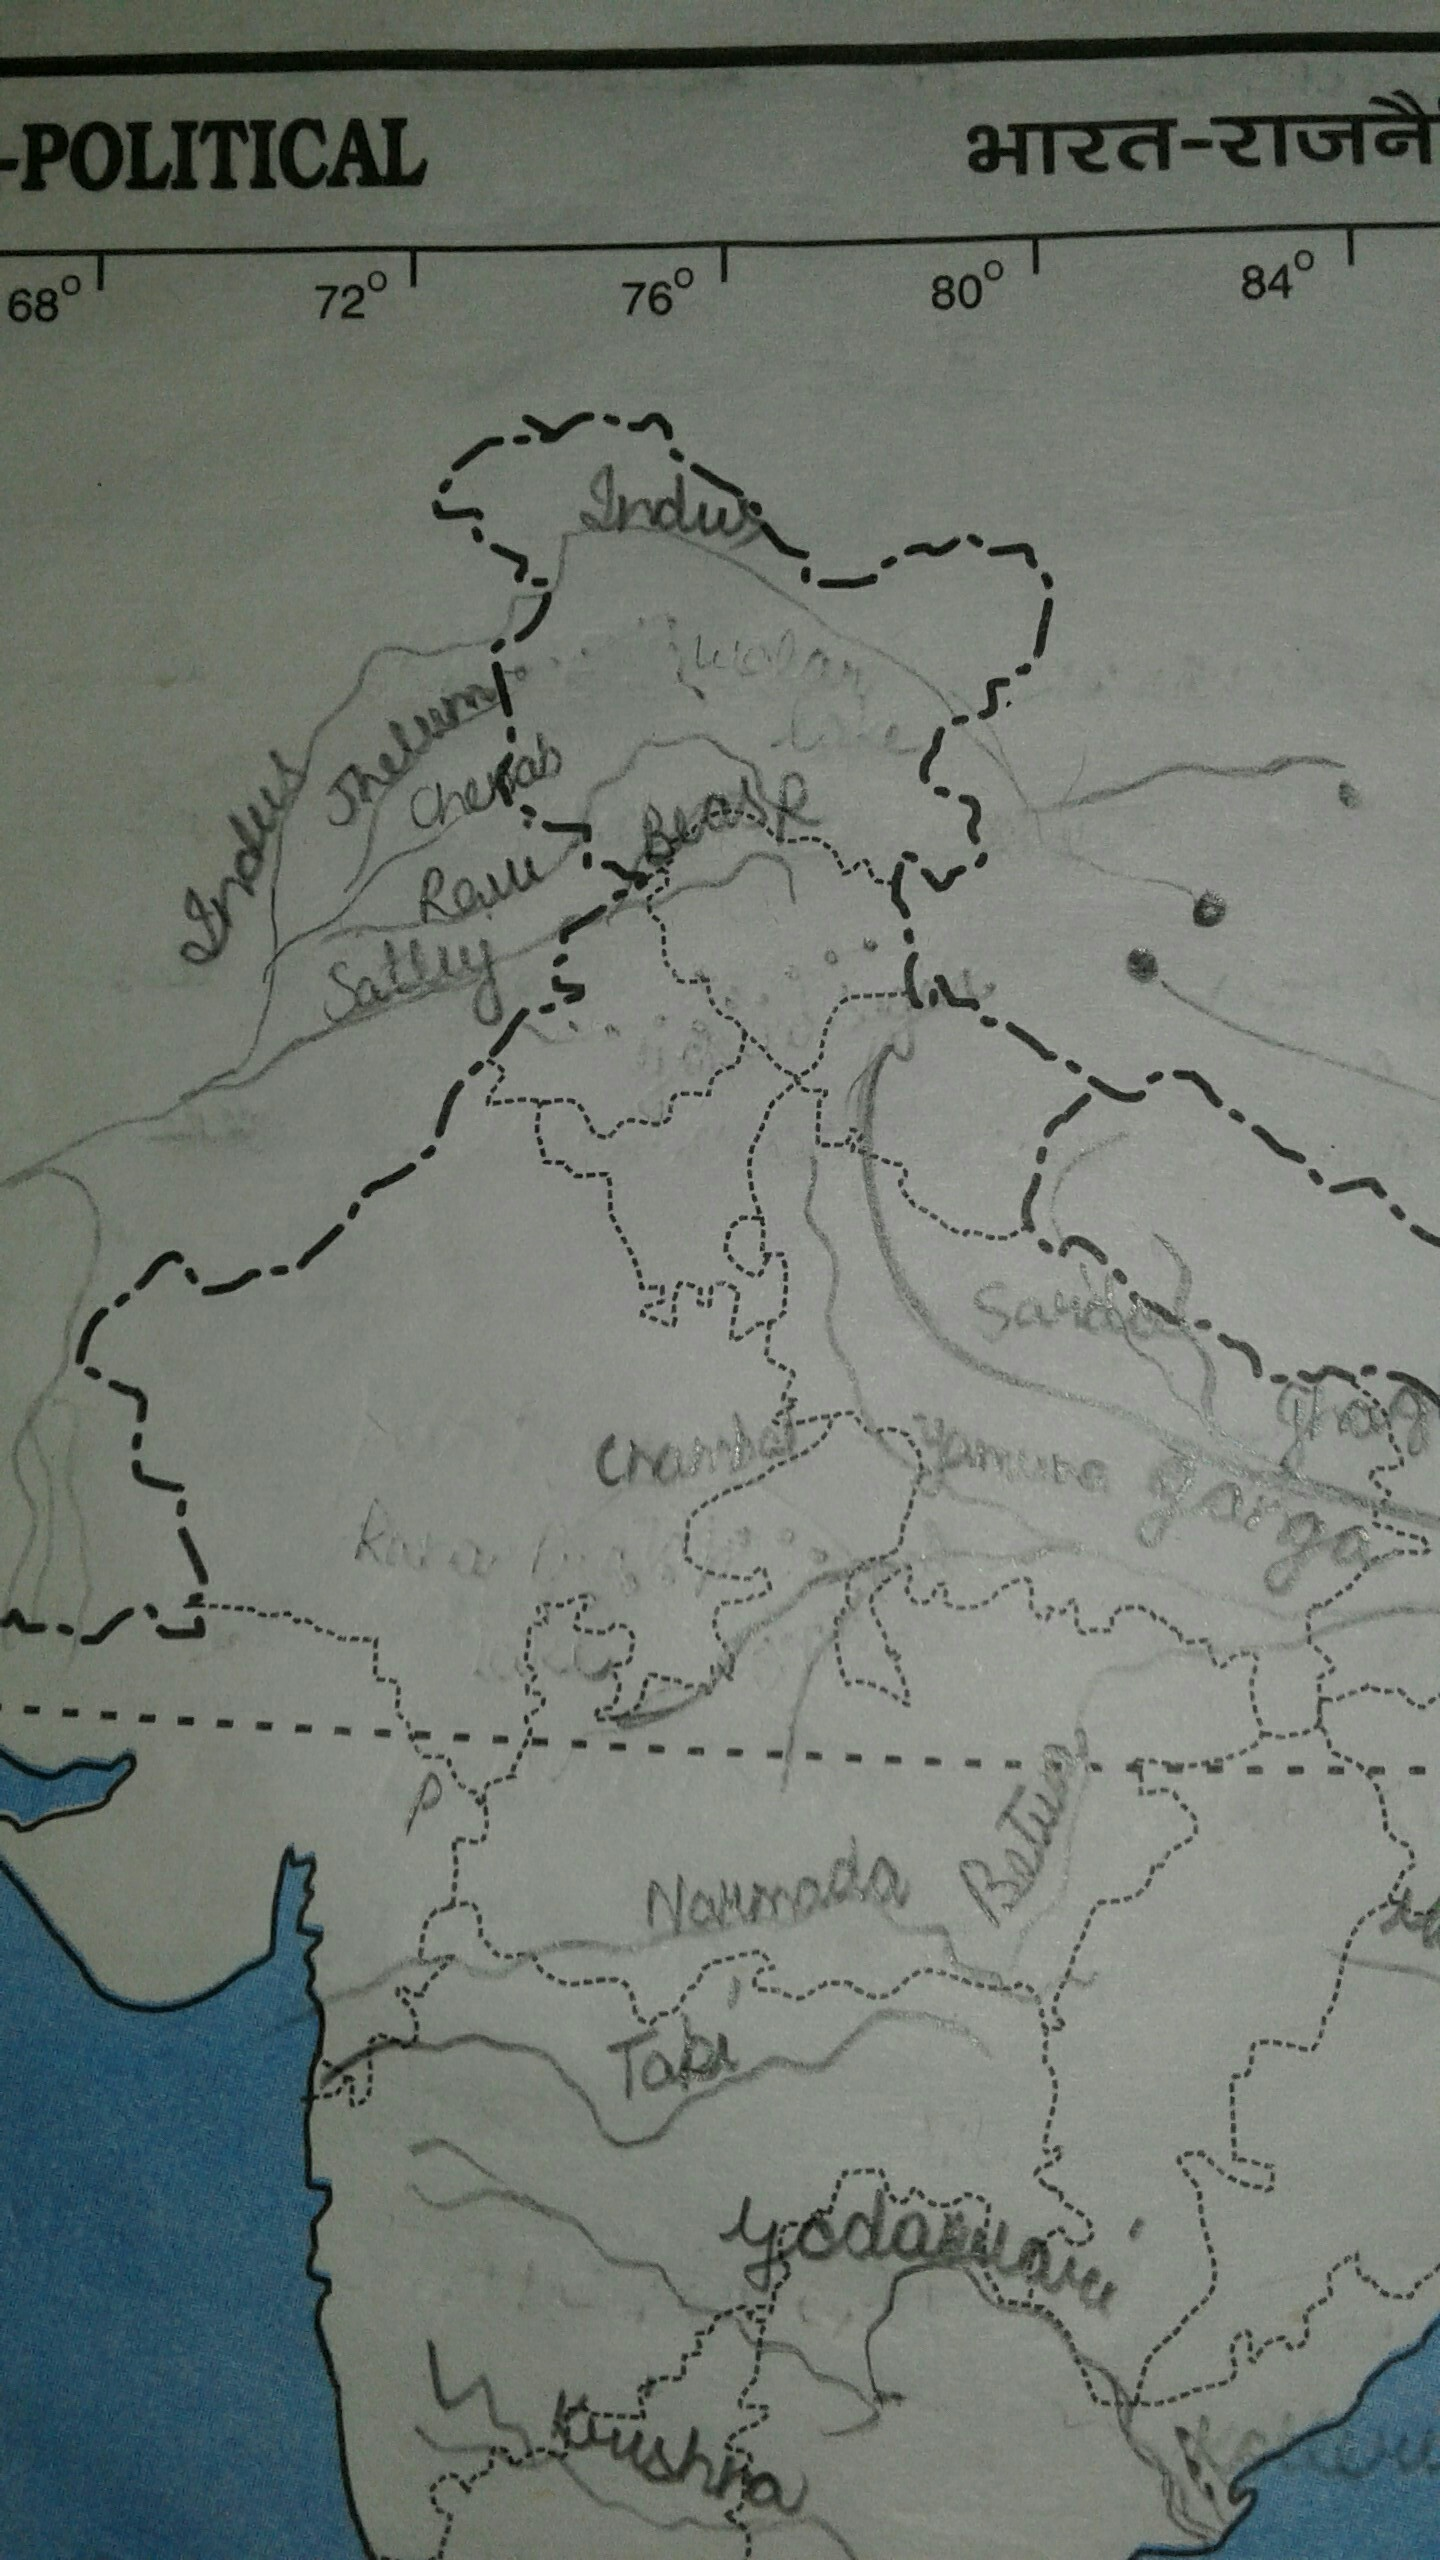 map on the Indus river course, its tributes, state benefited ... Indus River Mapped on tigris river, salween river, yellow river, amur river, euphrates river, rio grande river, yamuna river, meghna river, oxus river, mekong river, brahmaputra river, yangtze river, godavari river, padma river, ob river, irrawaddy river, syr darya river, ghaggar-hakra river, sutlej river, amu darya river,